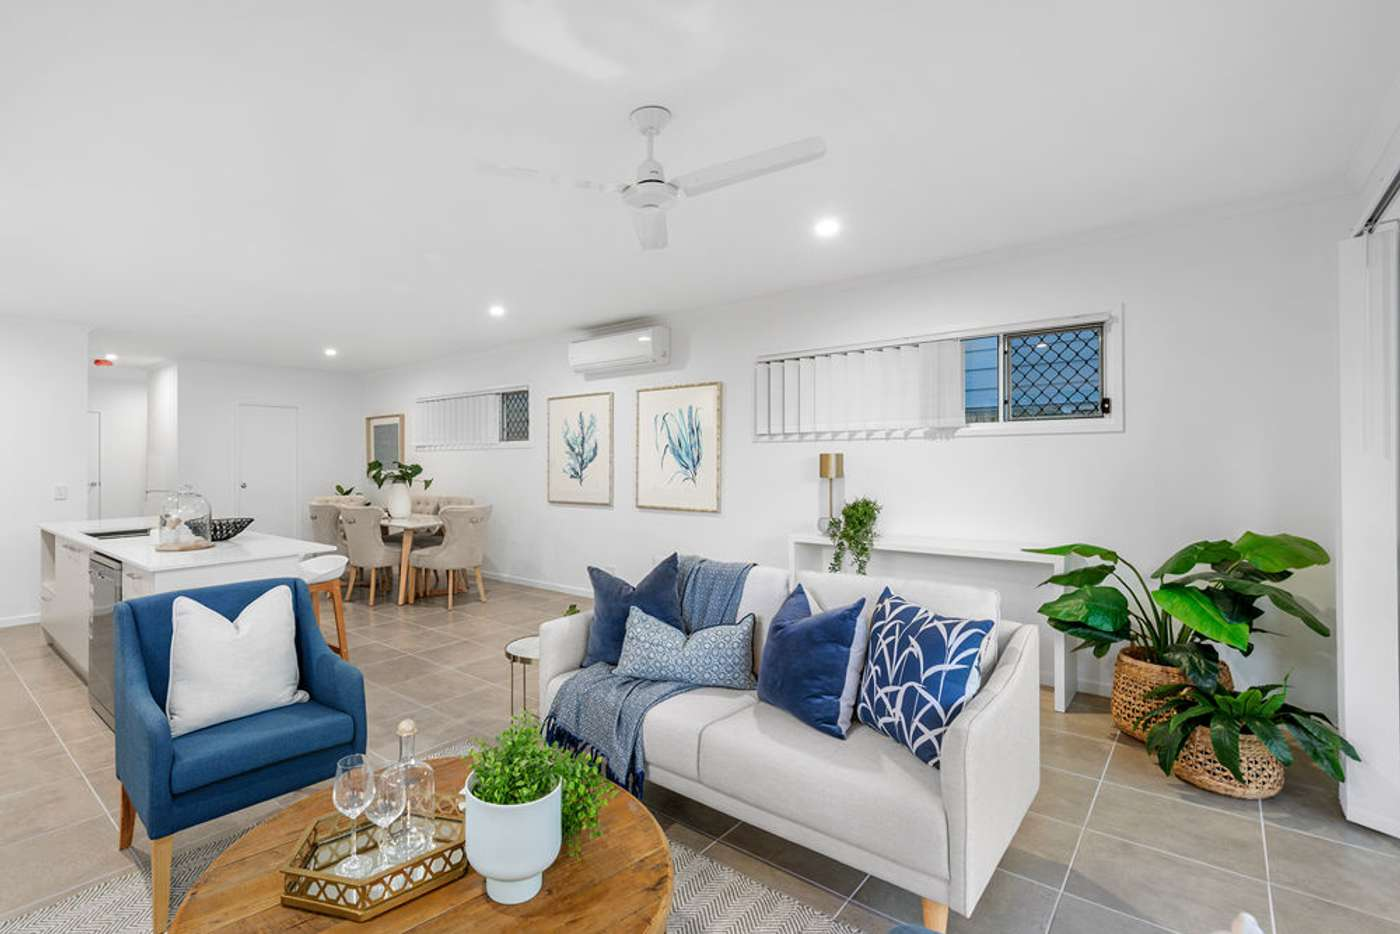 Fifth view of Homely house listing, 83 Winstanley Street, Carina Heights QLD 4152